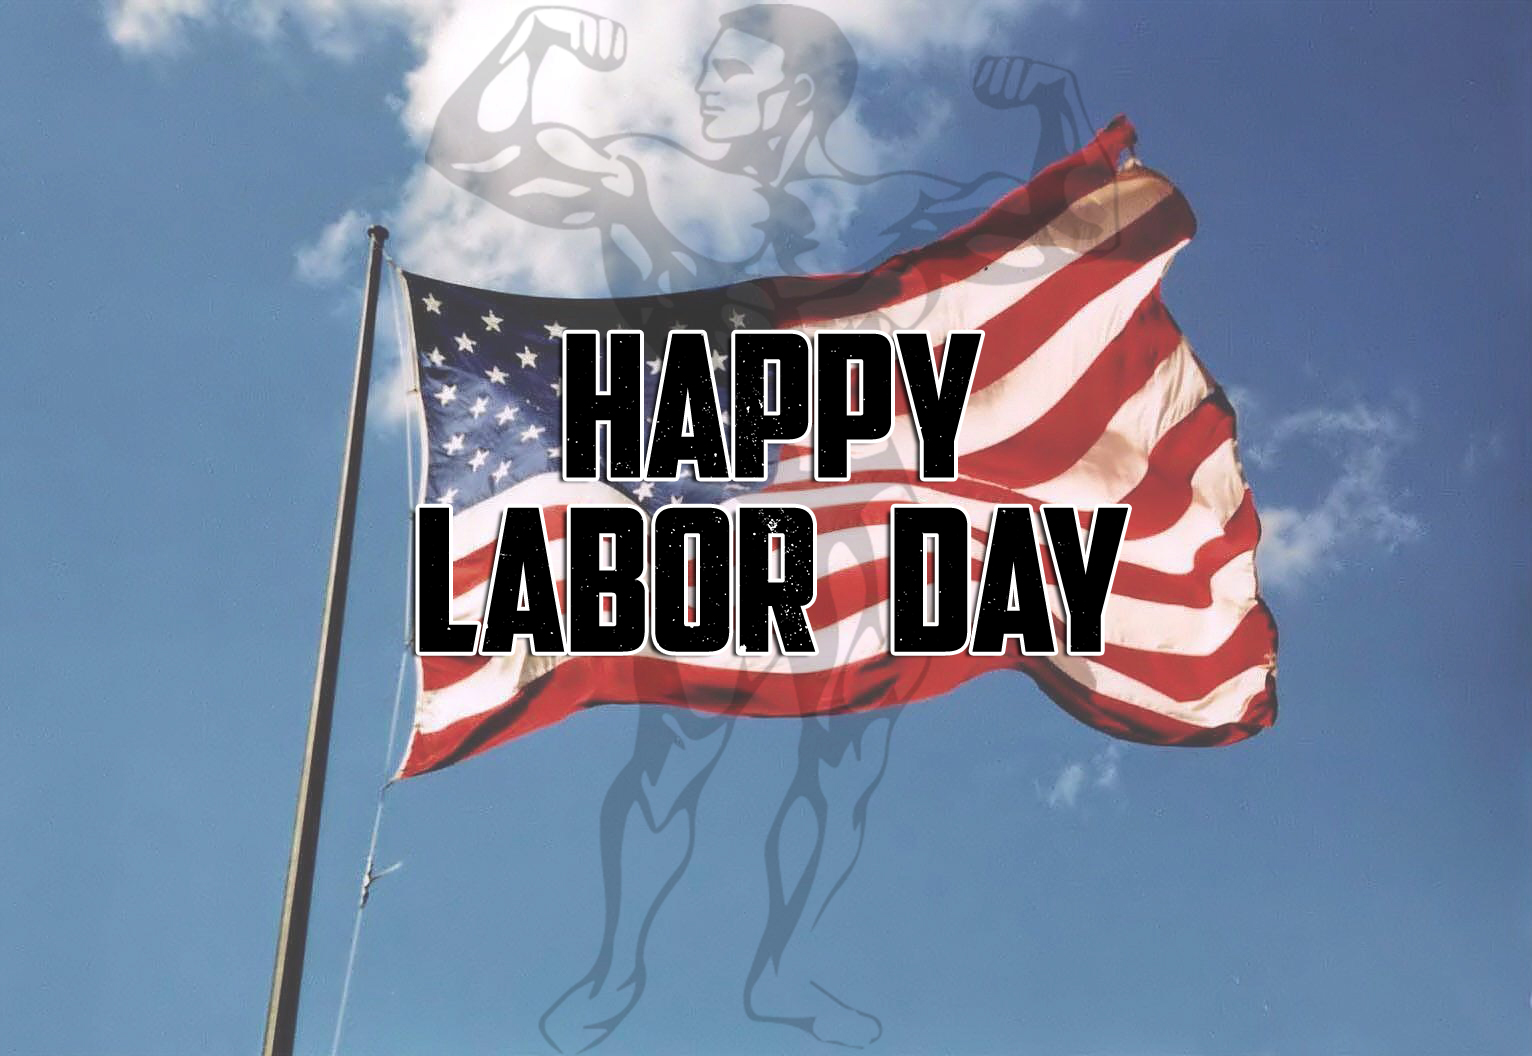 Happy Labor Day Teamripped